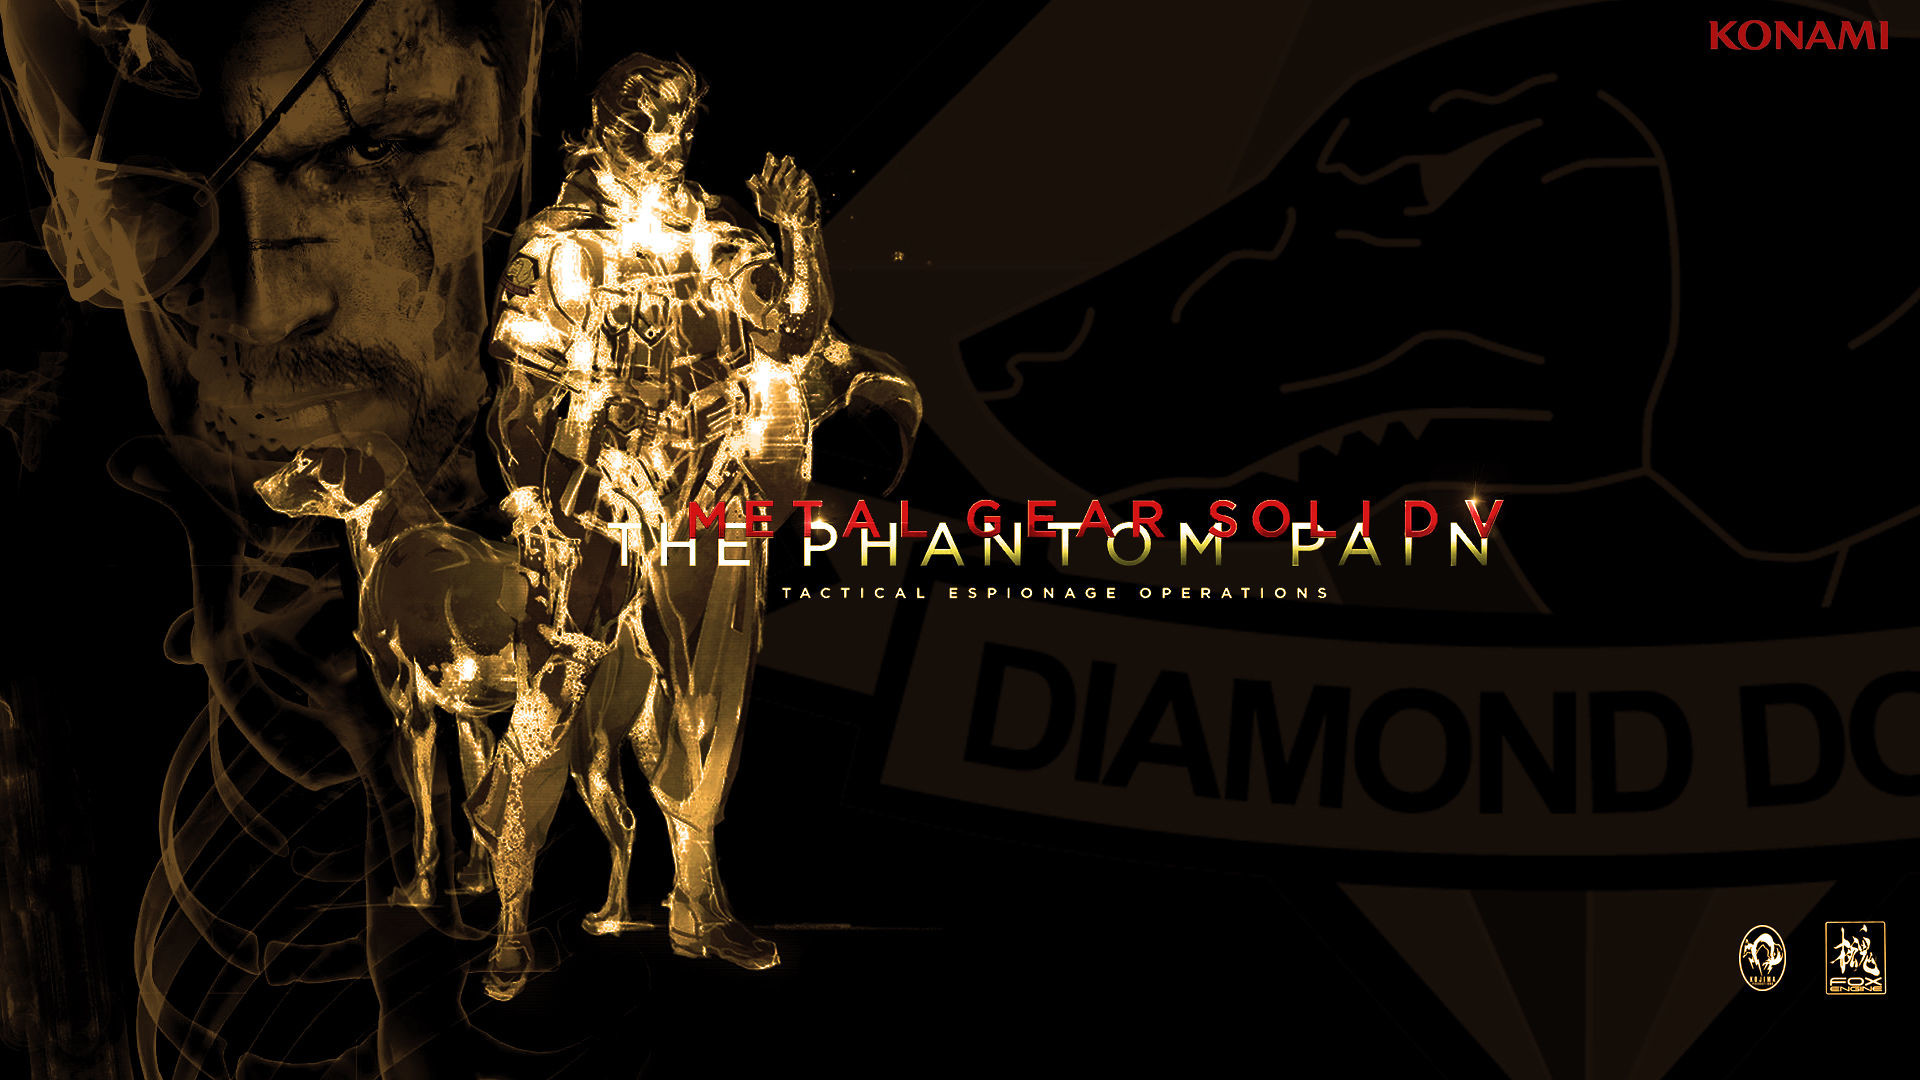 metal_gear_solid_5_wallpaper_by_snake_eater88-d69pin0-metal-gear-solid .